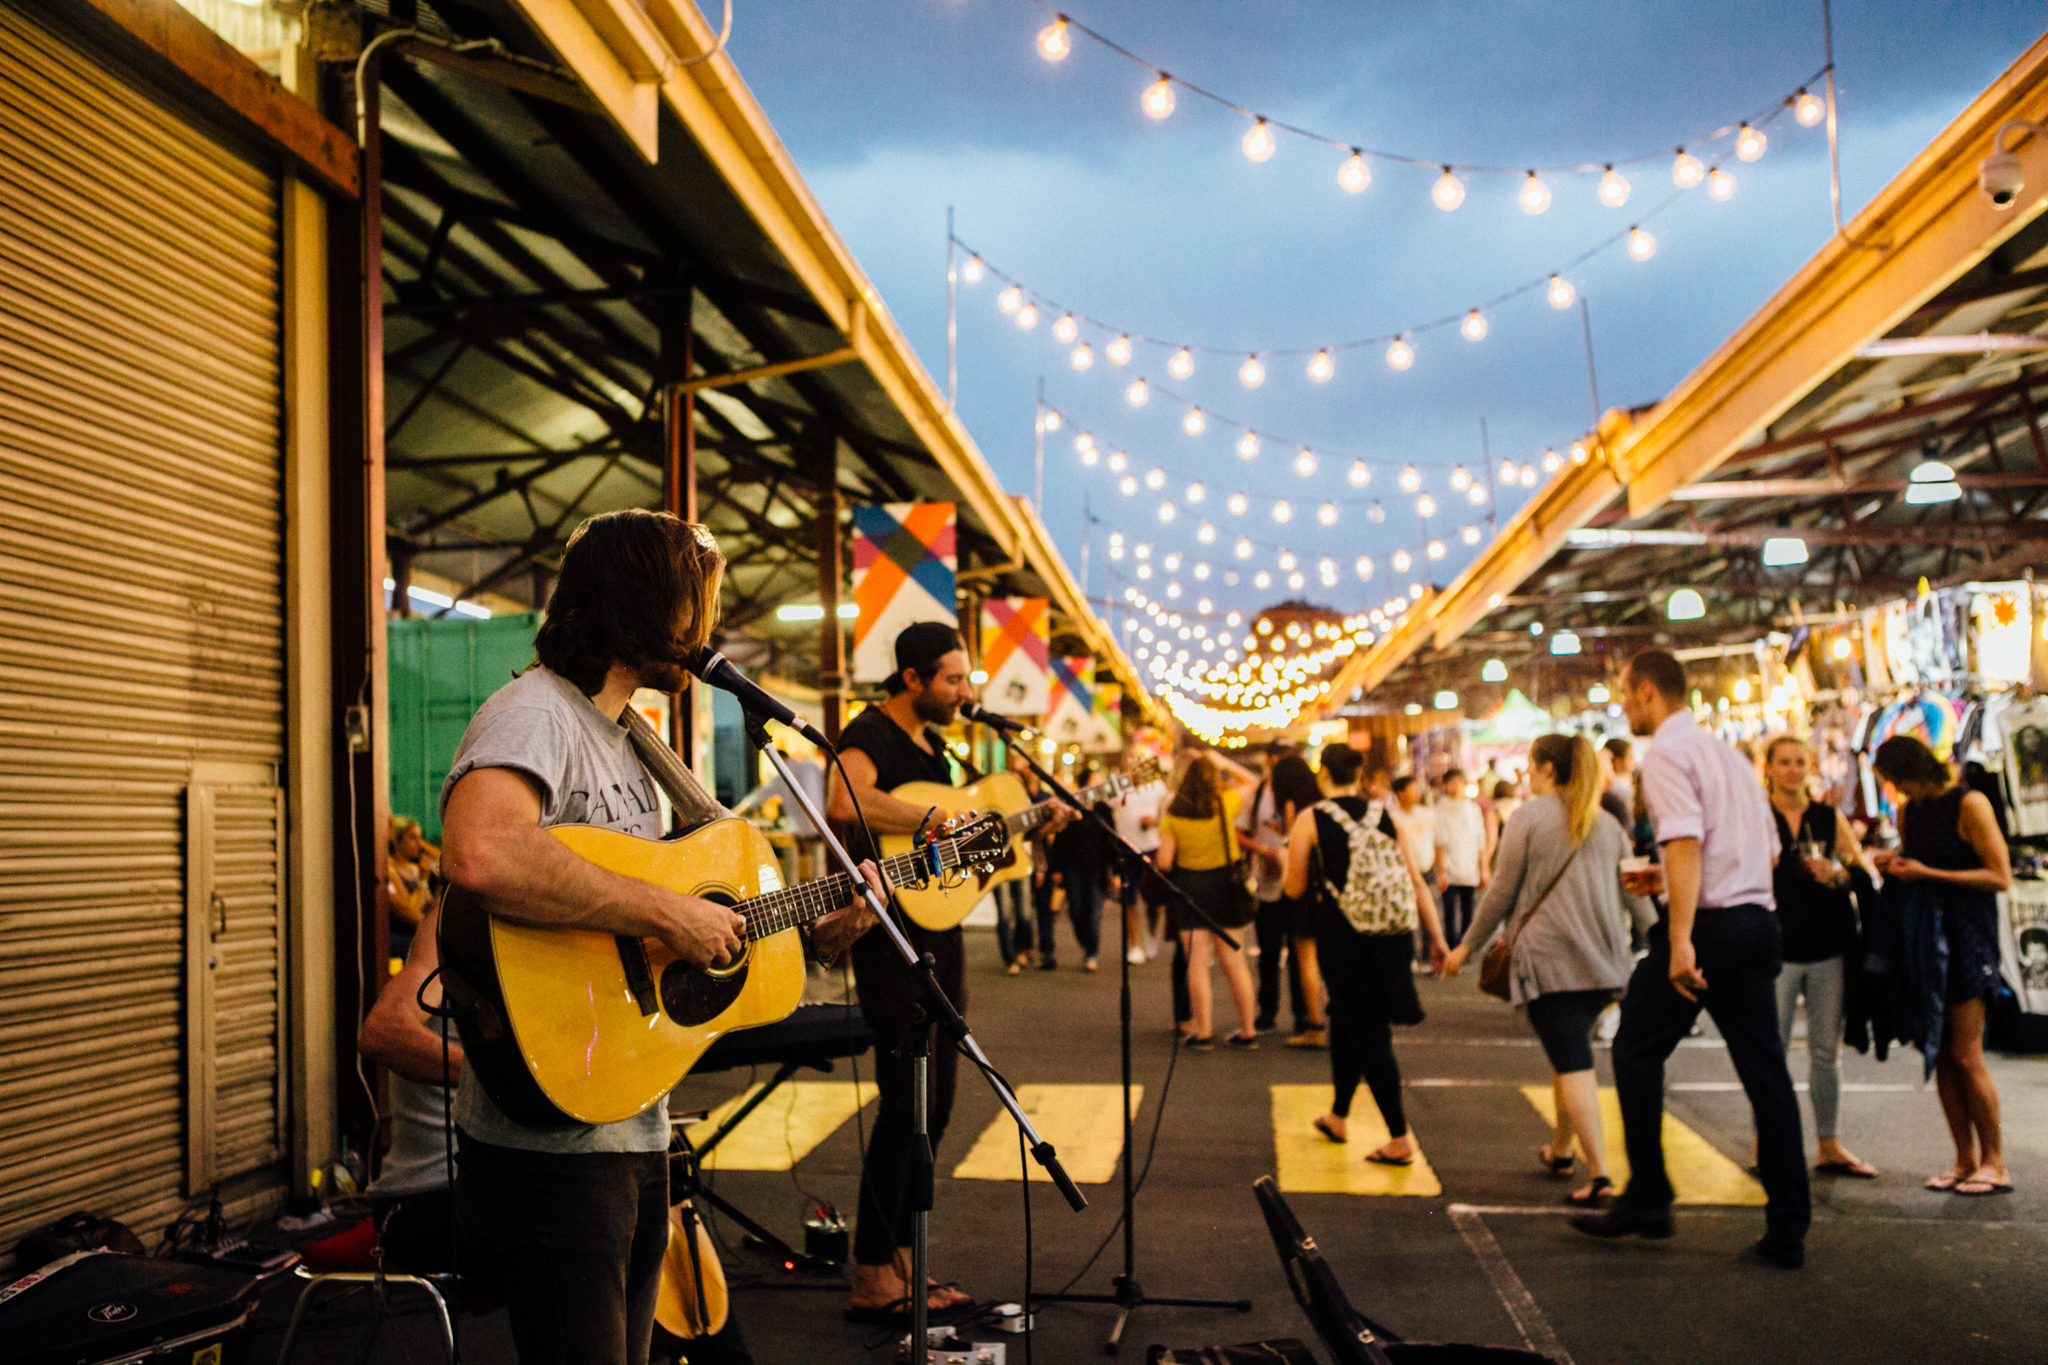 Head into the Queen Victoria Markets after work for food and fun